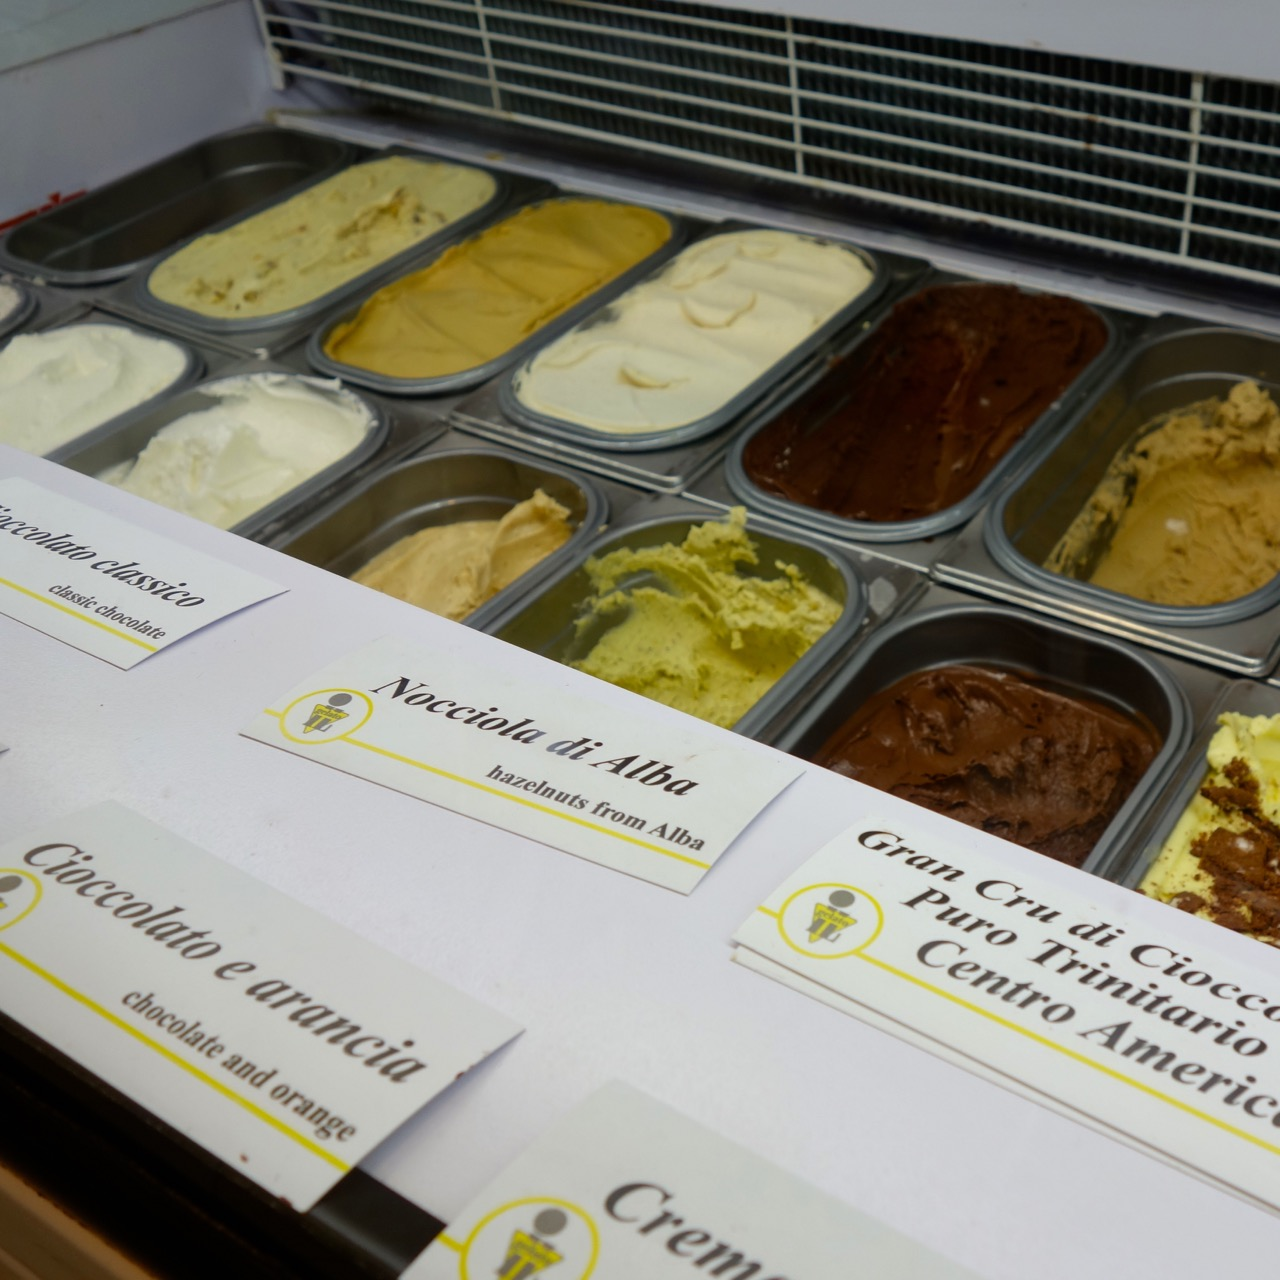 gelato flavors at claudio torce